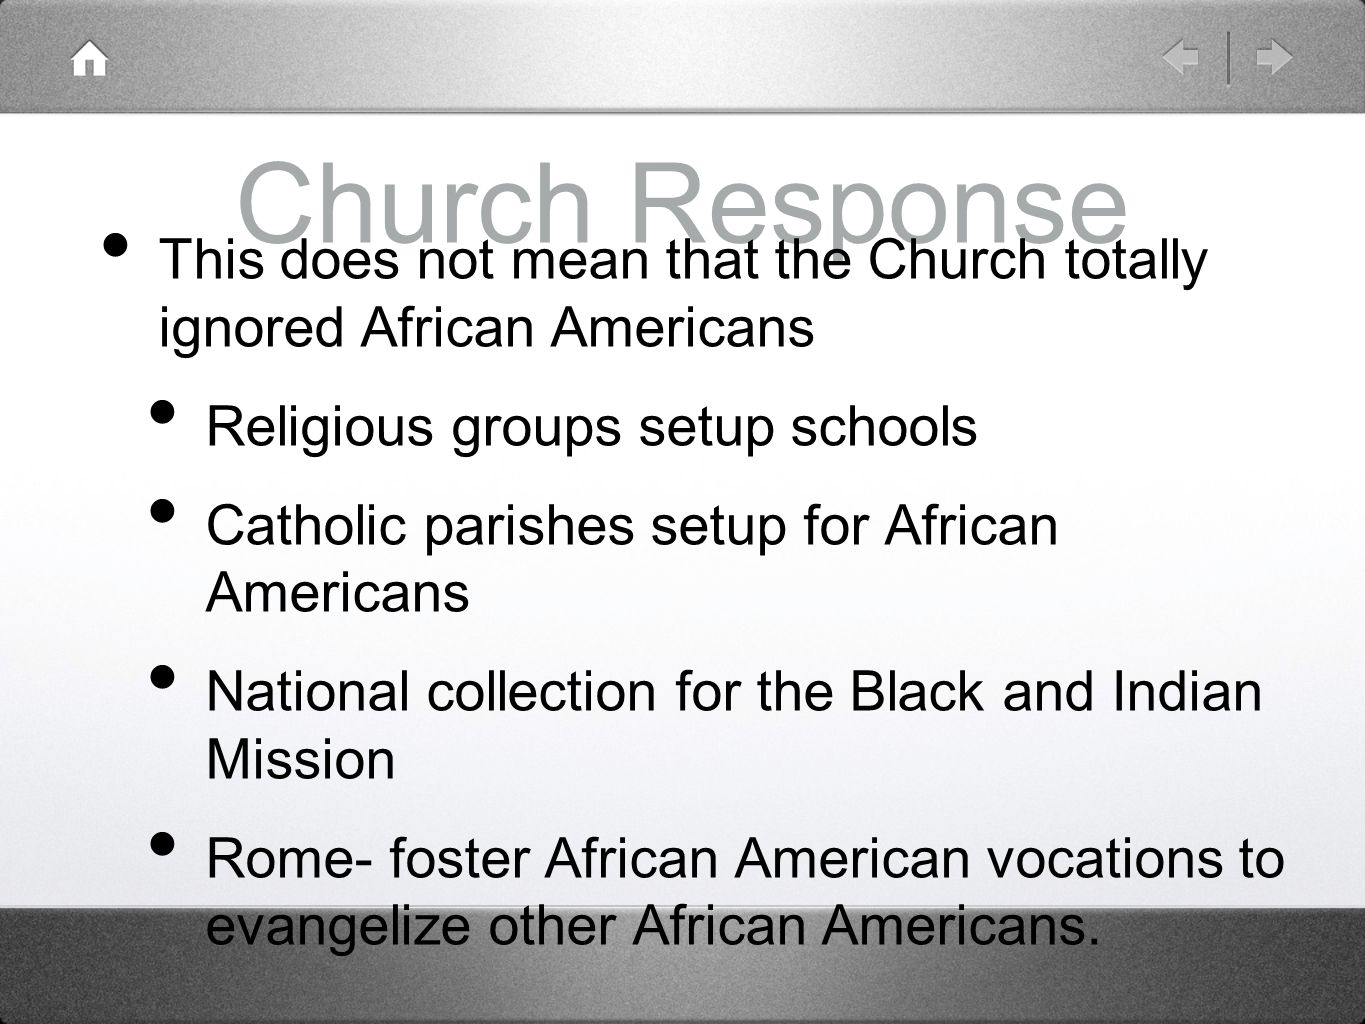 Church Response This does not mean that the Church totally ignored African Americans. Religious groups setup schools.